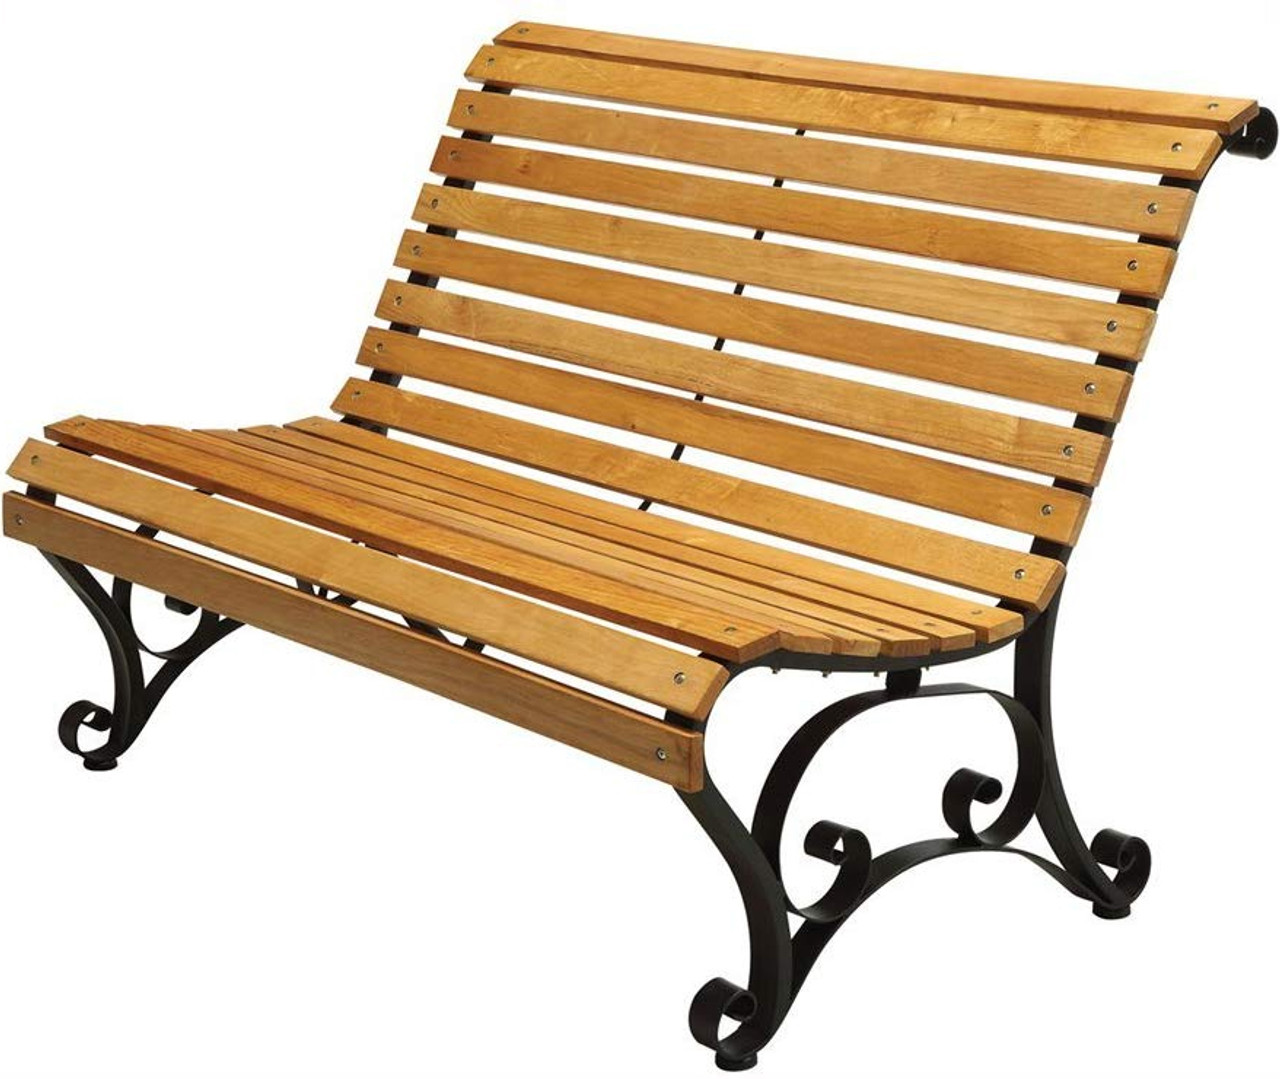 Excellent Parkview 48 Wide Oak Outdoor Bench Gmtry Best Dining Table And Chair Ideas Images Gmtryco